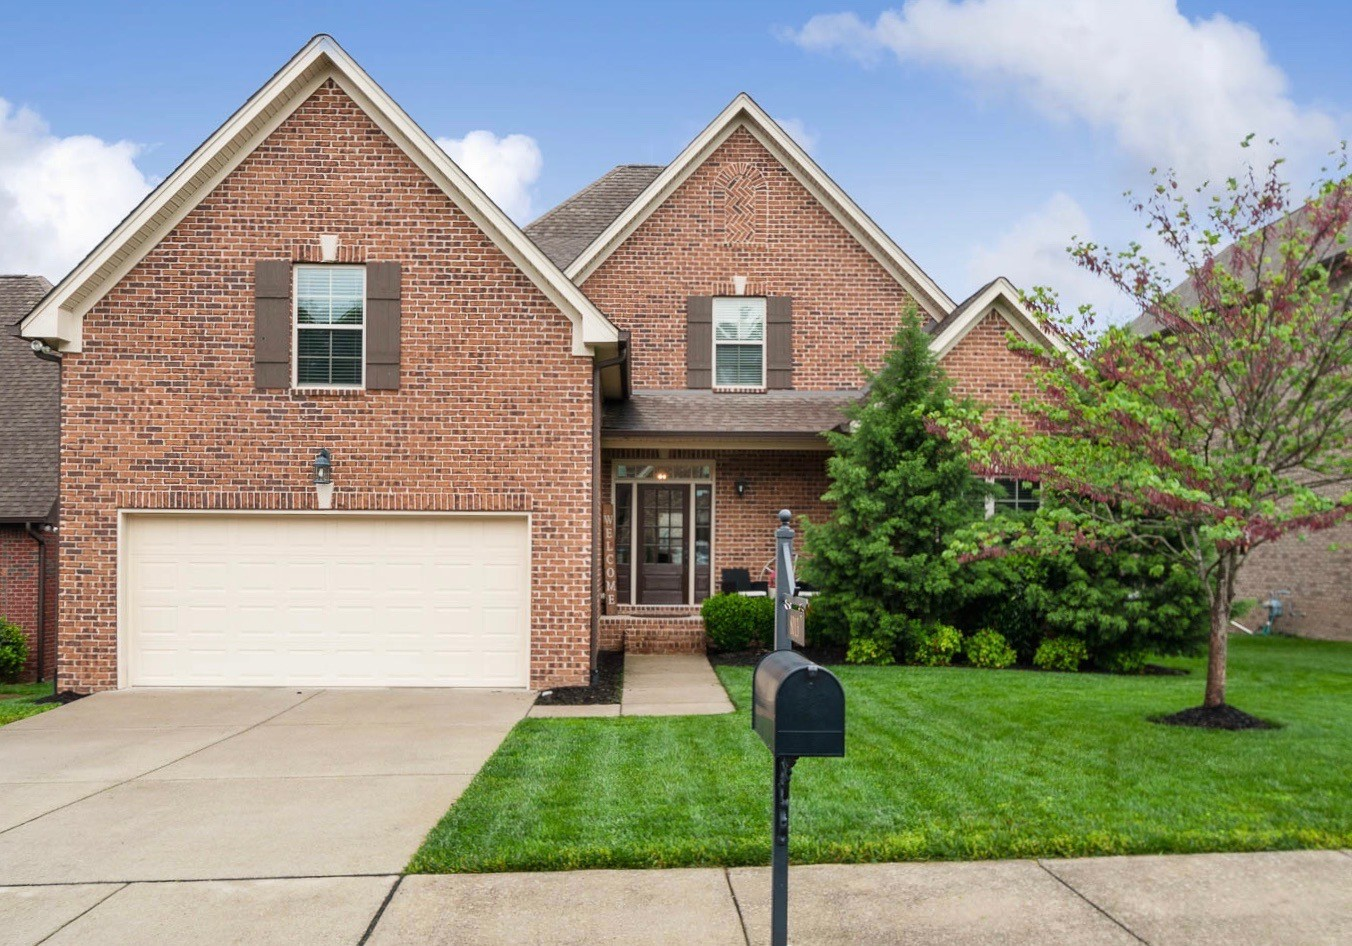 All Brick 4 Bedroom, 3 Full BA,  custom builder home in The Arbors! Brand New Carpet and Paint! Master and 4th Bedrm or Office down. Vaulted Family rm w/ FP, Real Hardwood floors, Spacious Kitchen w/ Granite Counters, island, pantry, tons of cabinets, and a generous dining area. 2 Bedrooms, full bath and bonus up! Walk in storage! Fenced backyard!